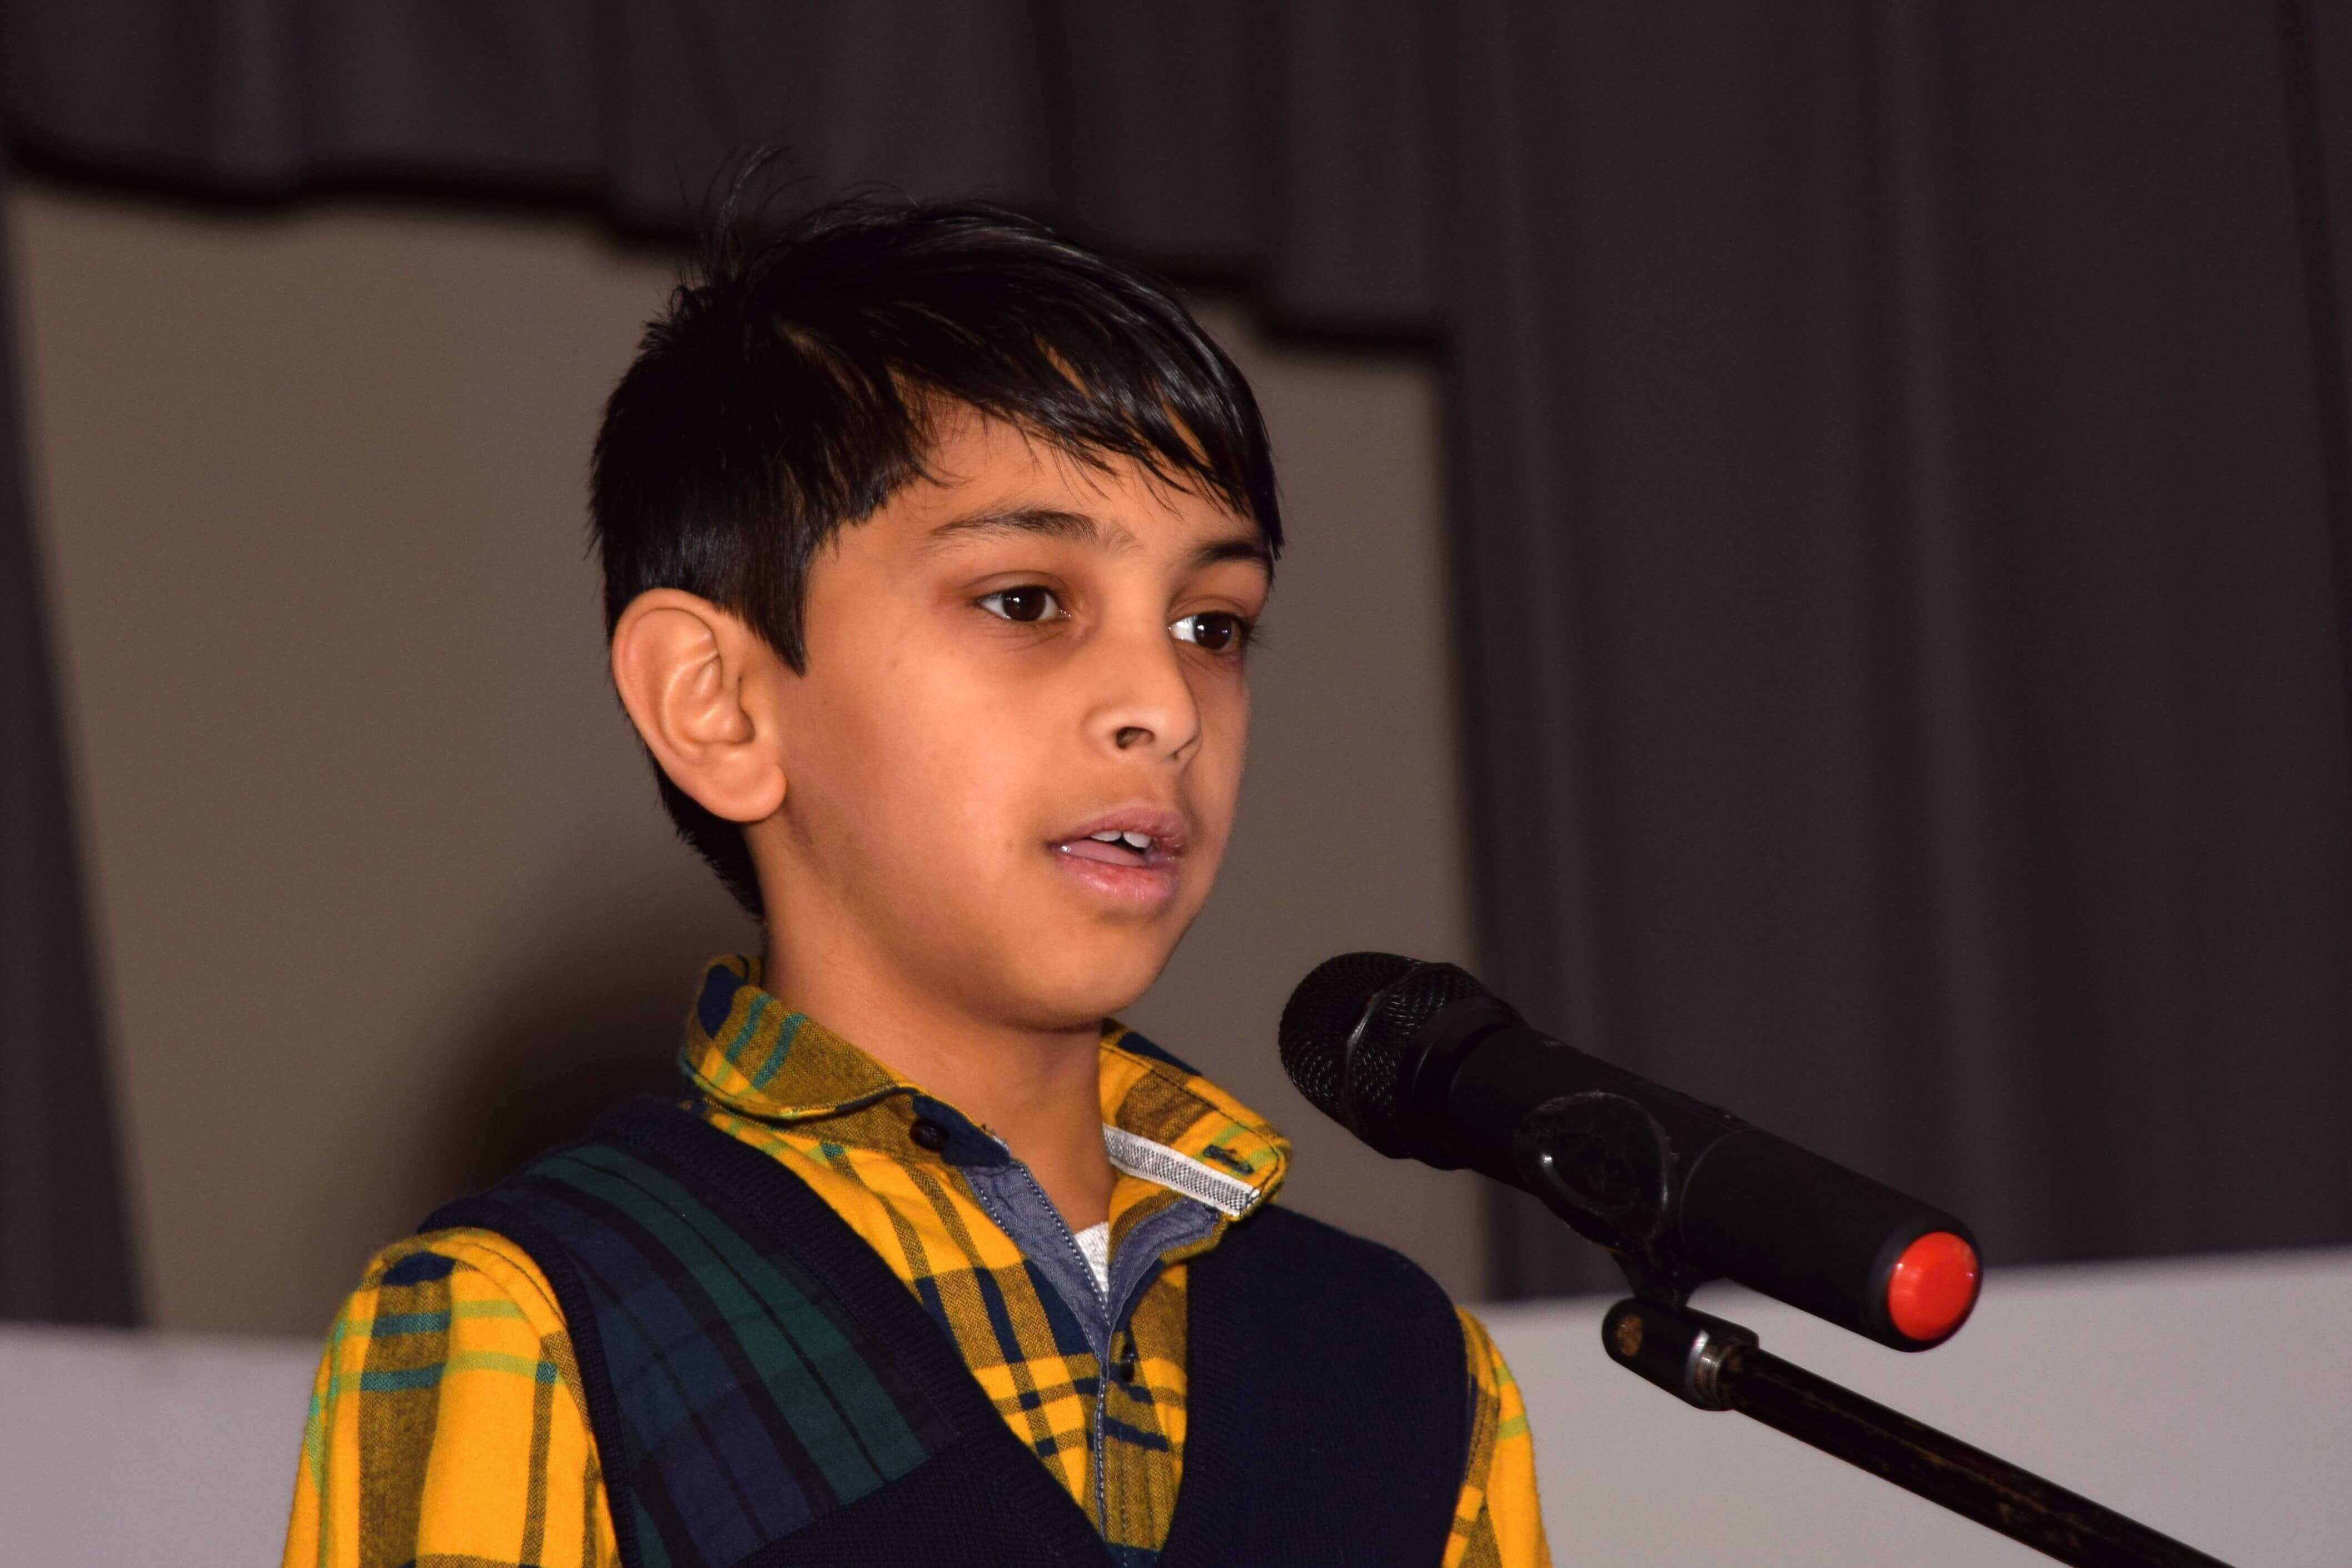 boy narrating on stage